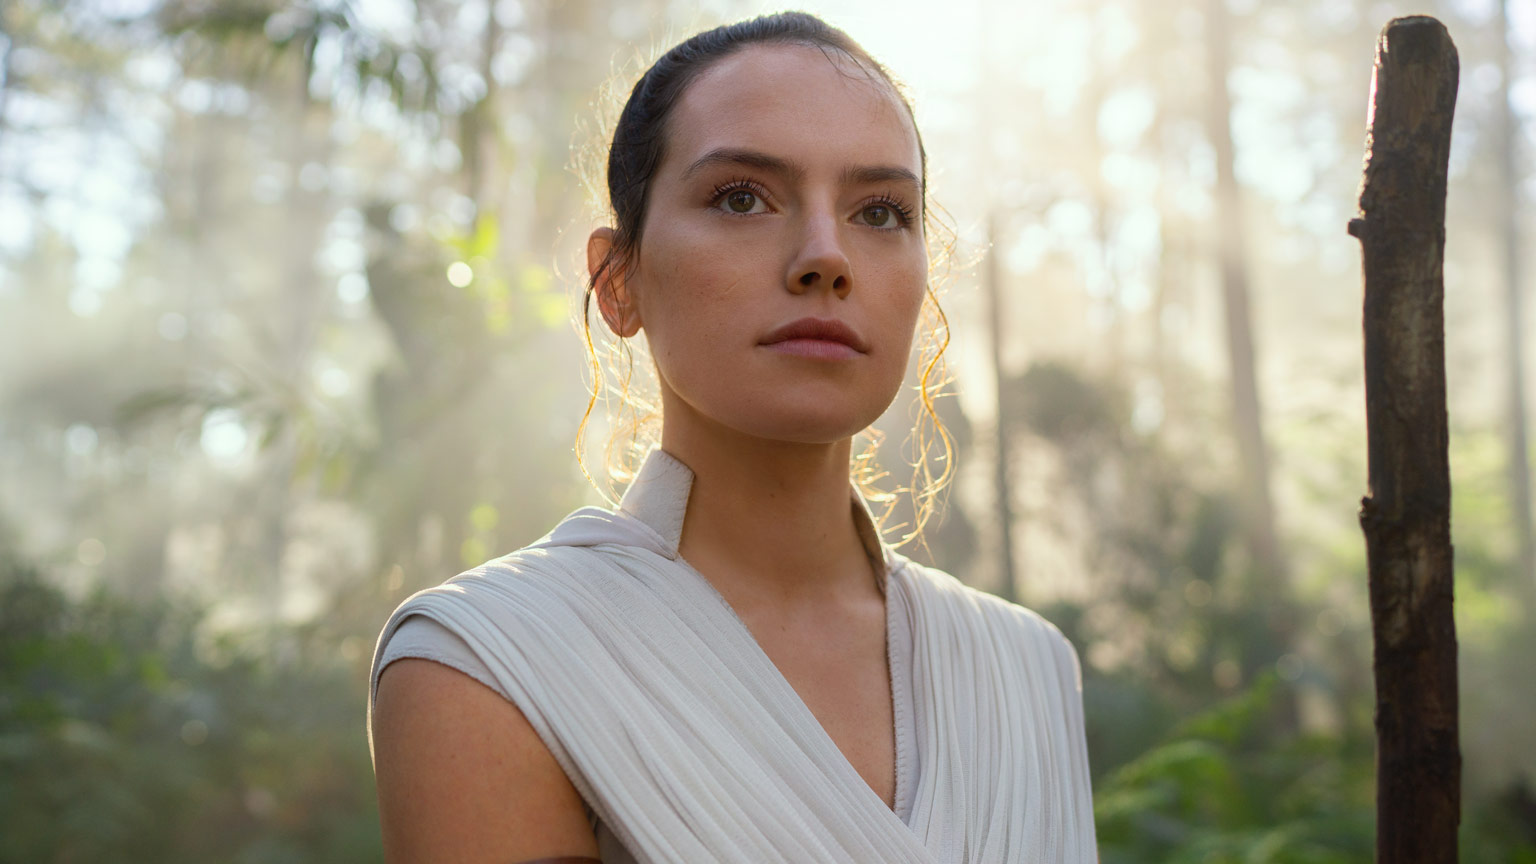 Rey training in Star Wars: The Rise of Skywalker